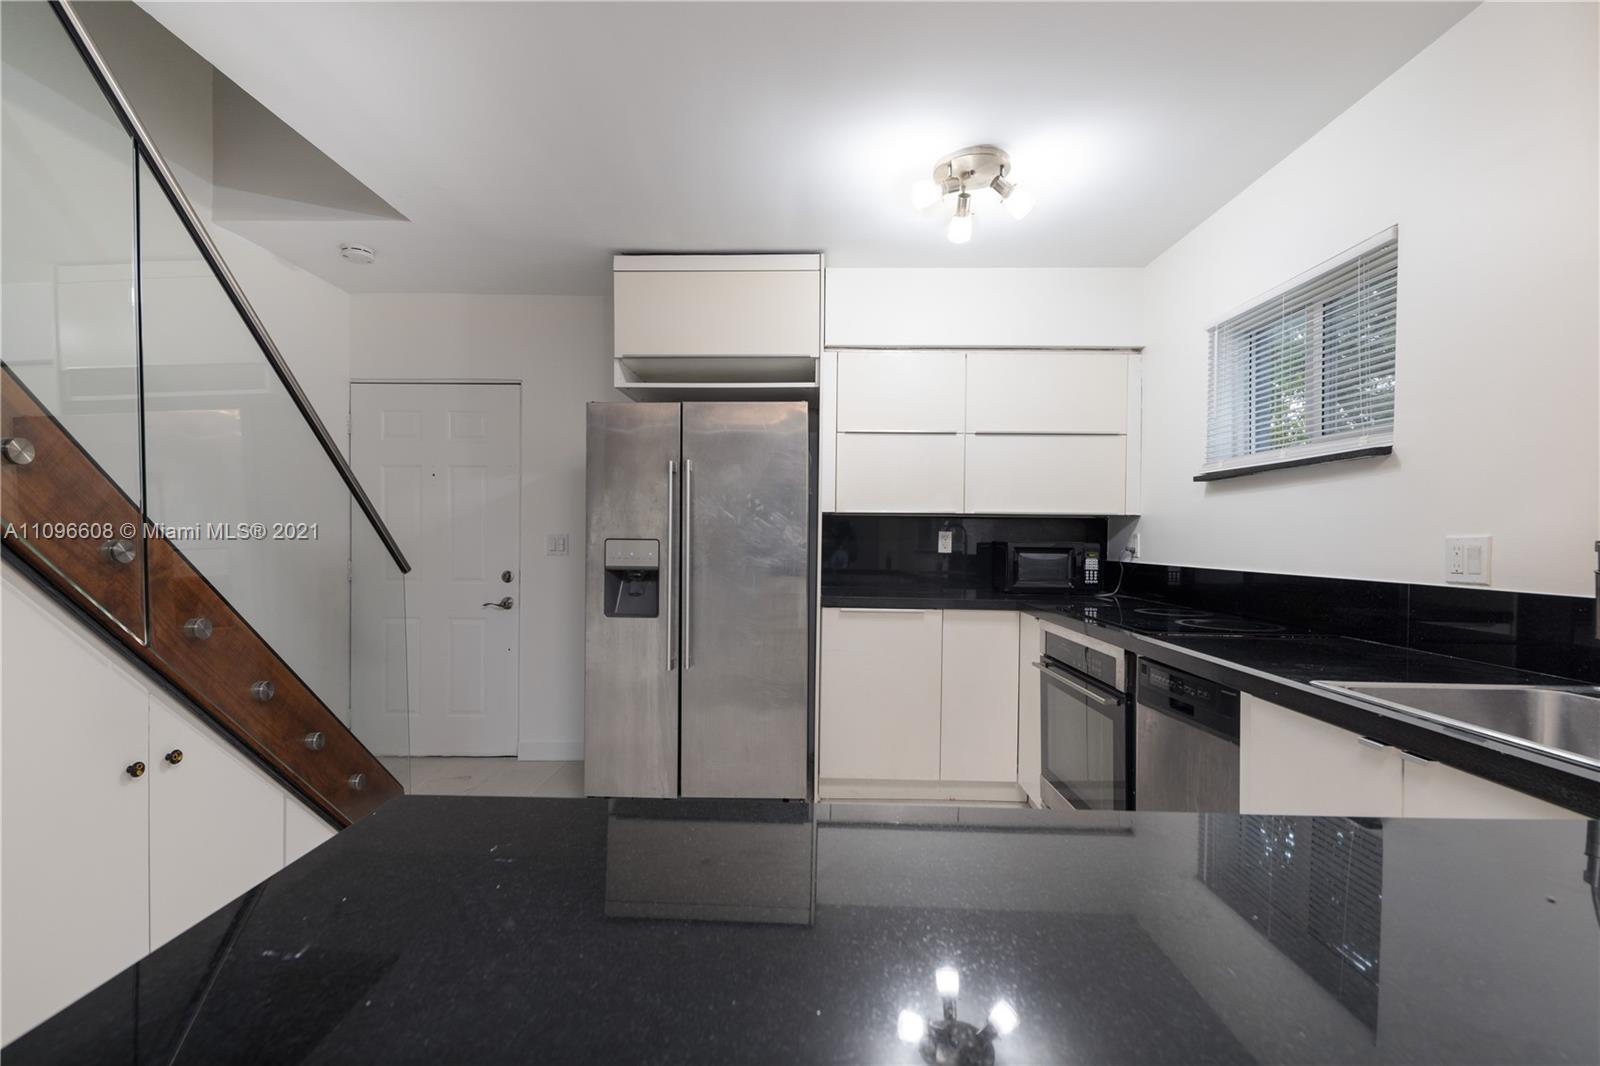 Completely updated 1 bedroom 2 story townhome located in the heart of Coconut Grove. This unit welcomes you with an open kitchen, modern tile floor, stainless steel appliances, dishwasher, garbage disposal, washer & dryer, 1/2 Bath, and spacious balcony. Enjoy the custom glass railings, custom wood stairs, and modern hanging chandelier. Both bedrooms located upstairs with balcony access each room. The fullpath separates both rooms and both closets within bedrooms offers custom california closets. Building offers hurricane impact windows & state of the art security cameras. Apartment has 1 assigned parking spot and also offers street parking for guests. Minutes away from Cocowalk, University of Miami, Coral Gables, Brickell, Sunset Mall and much more!